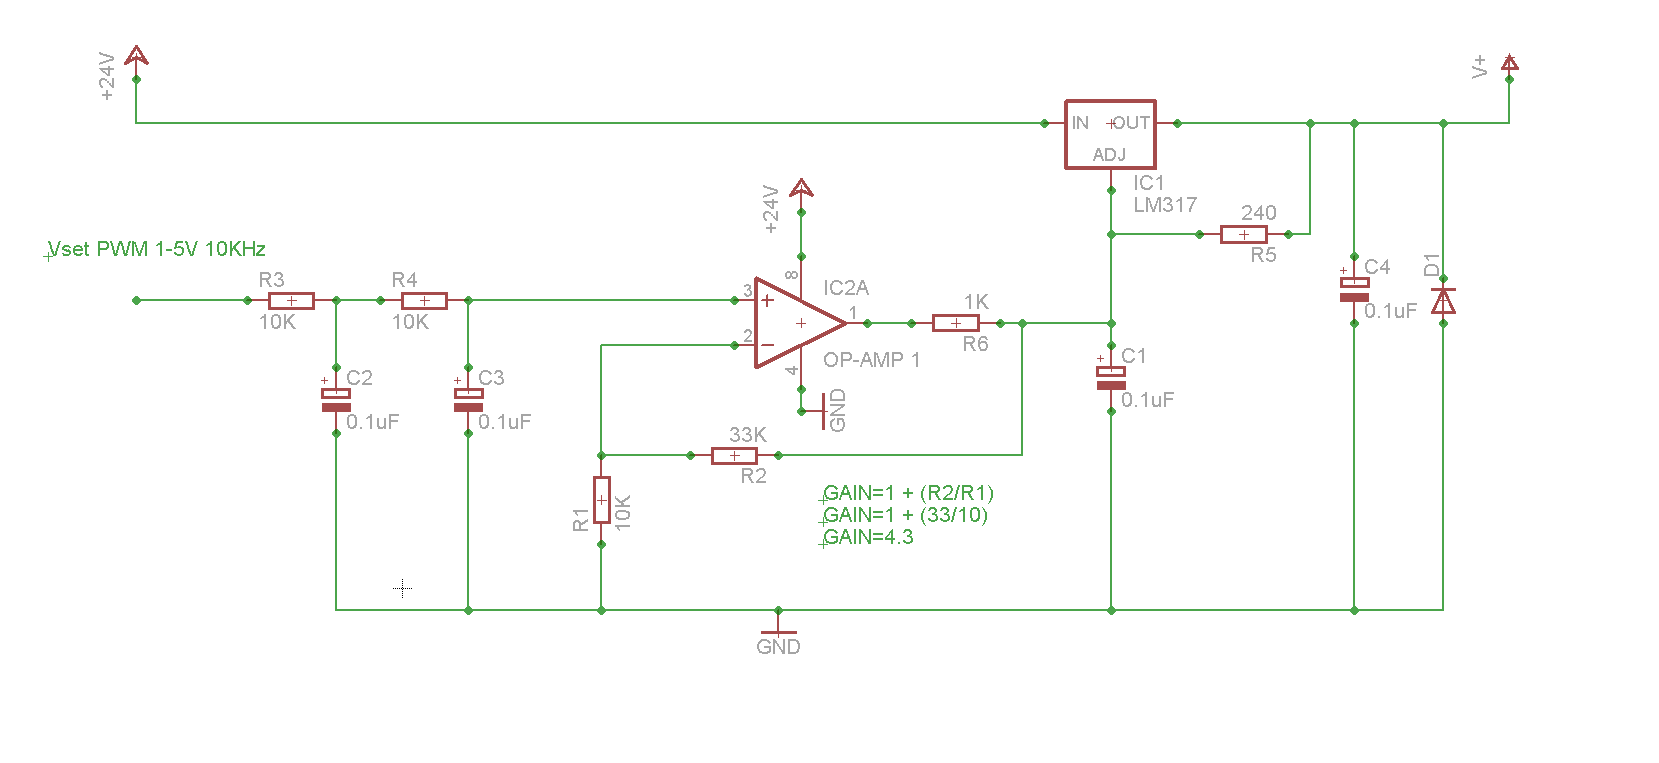 Lm317 Pwm Control Page 1 Simple Audio Amplifier Circuit Diagrams Any Other Suggestions Will Be Appreciated As Always I Have Settled On Using The Lm324 Op Amp Or Lm358n